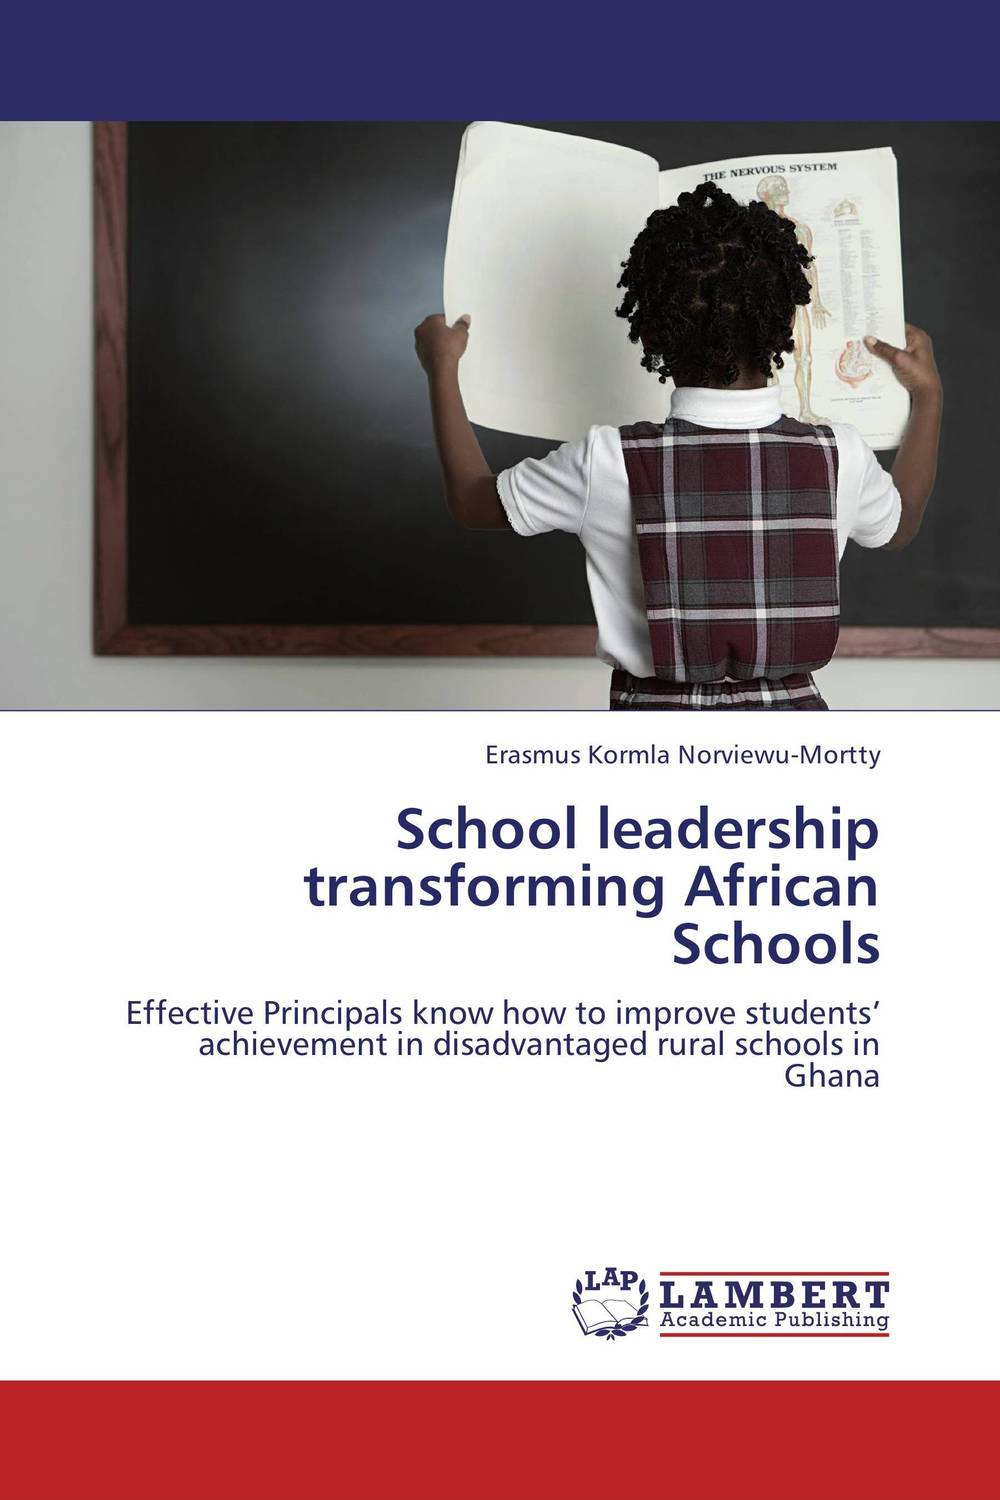 School leadership transforming African Schools role of school leadership in promoting moral integrity among students